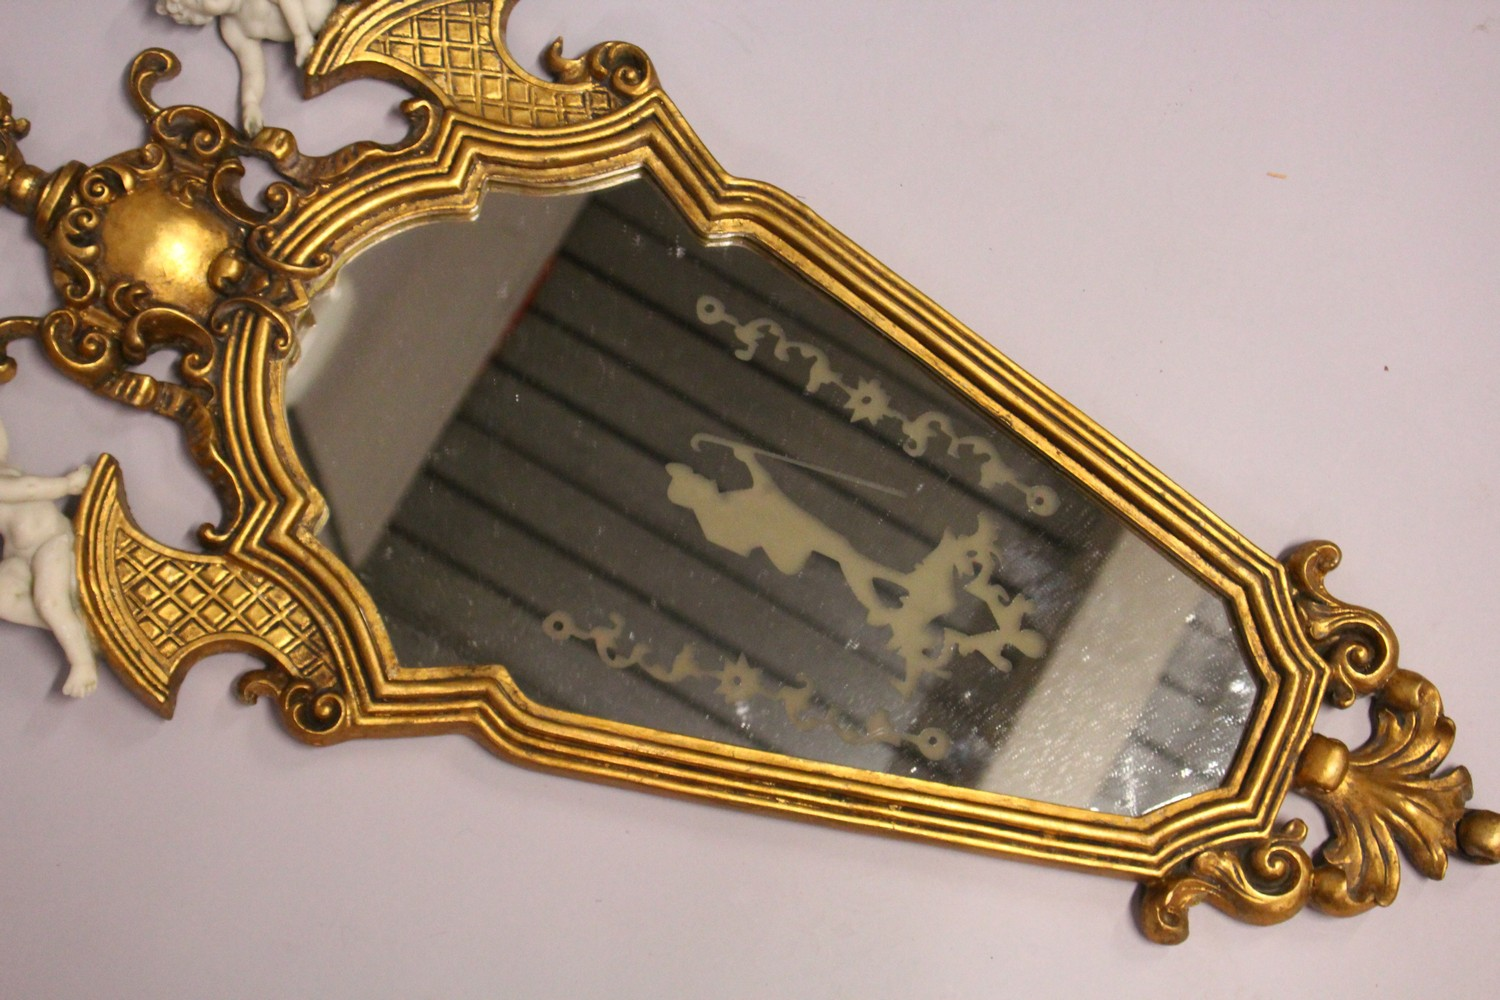 Lot 1015 - A FRENCH STYLE GILT FRAMED MIRROR, mounted with cherubs. 2ft 10ins high x 1ft 5ins wide.